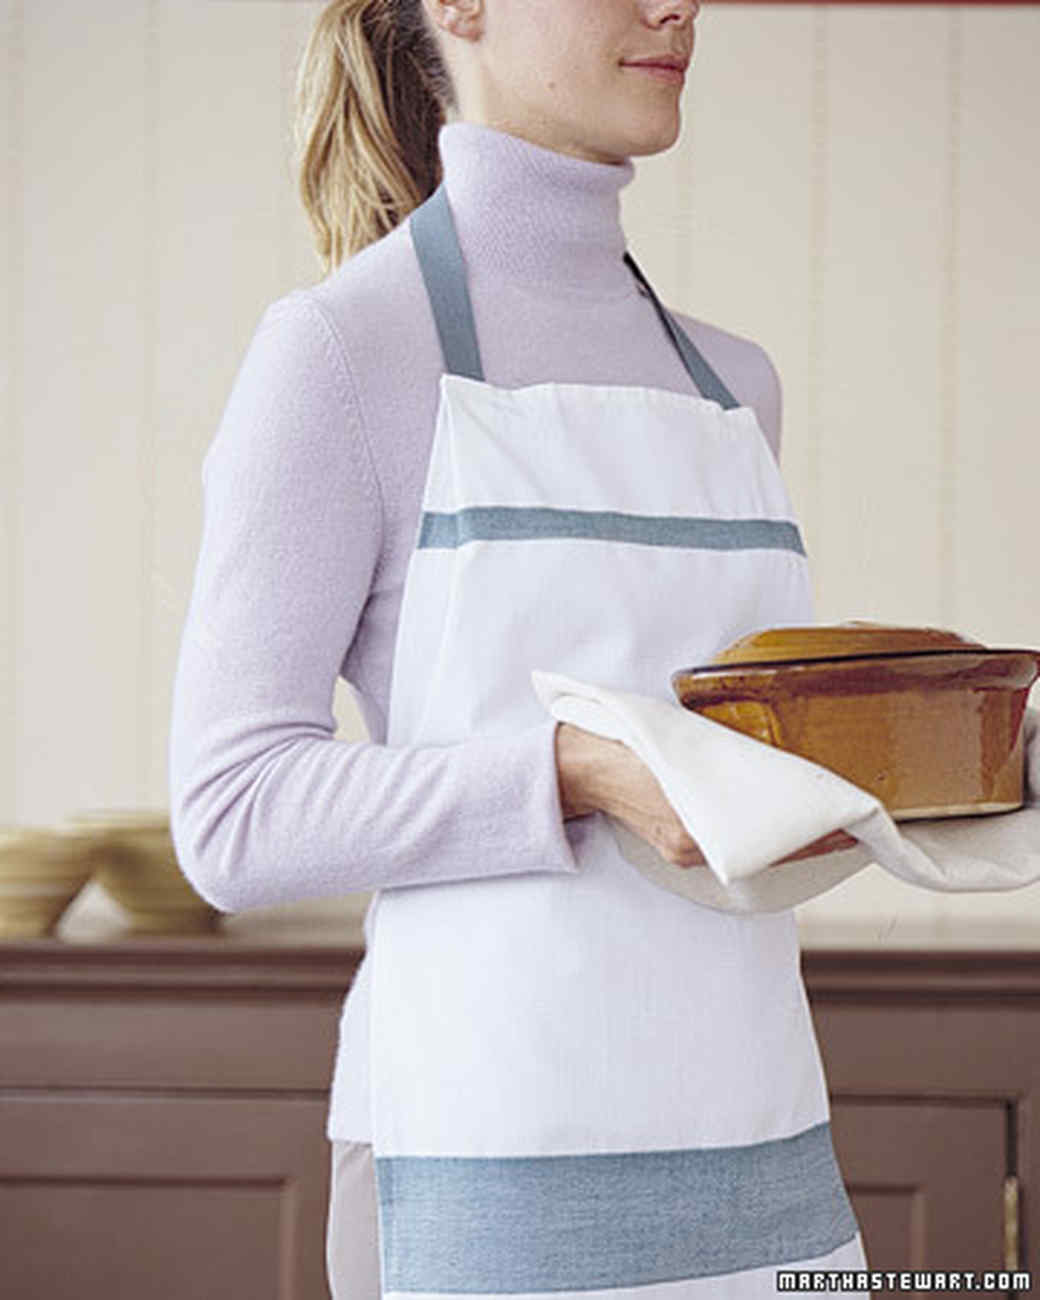 martha stewart kitchen towels island cart 10 times you use paper when really shouldn 39t